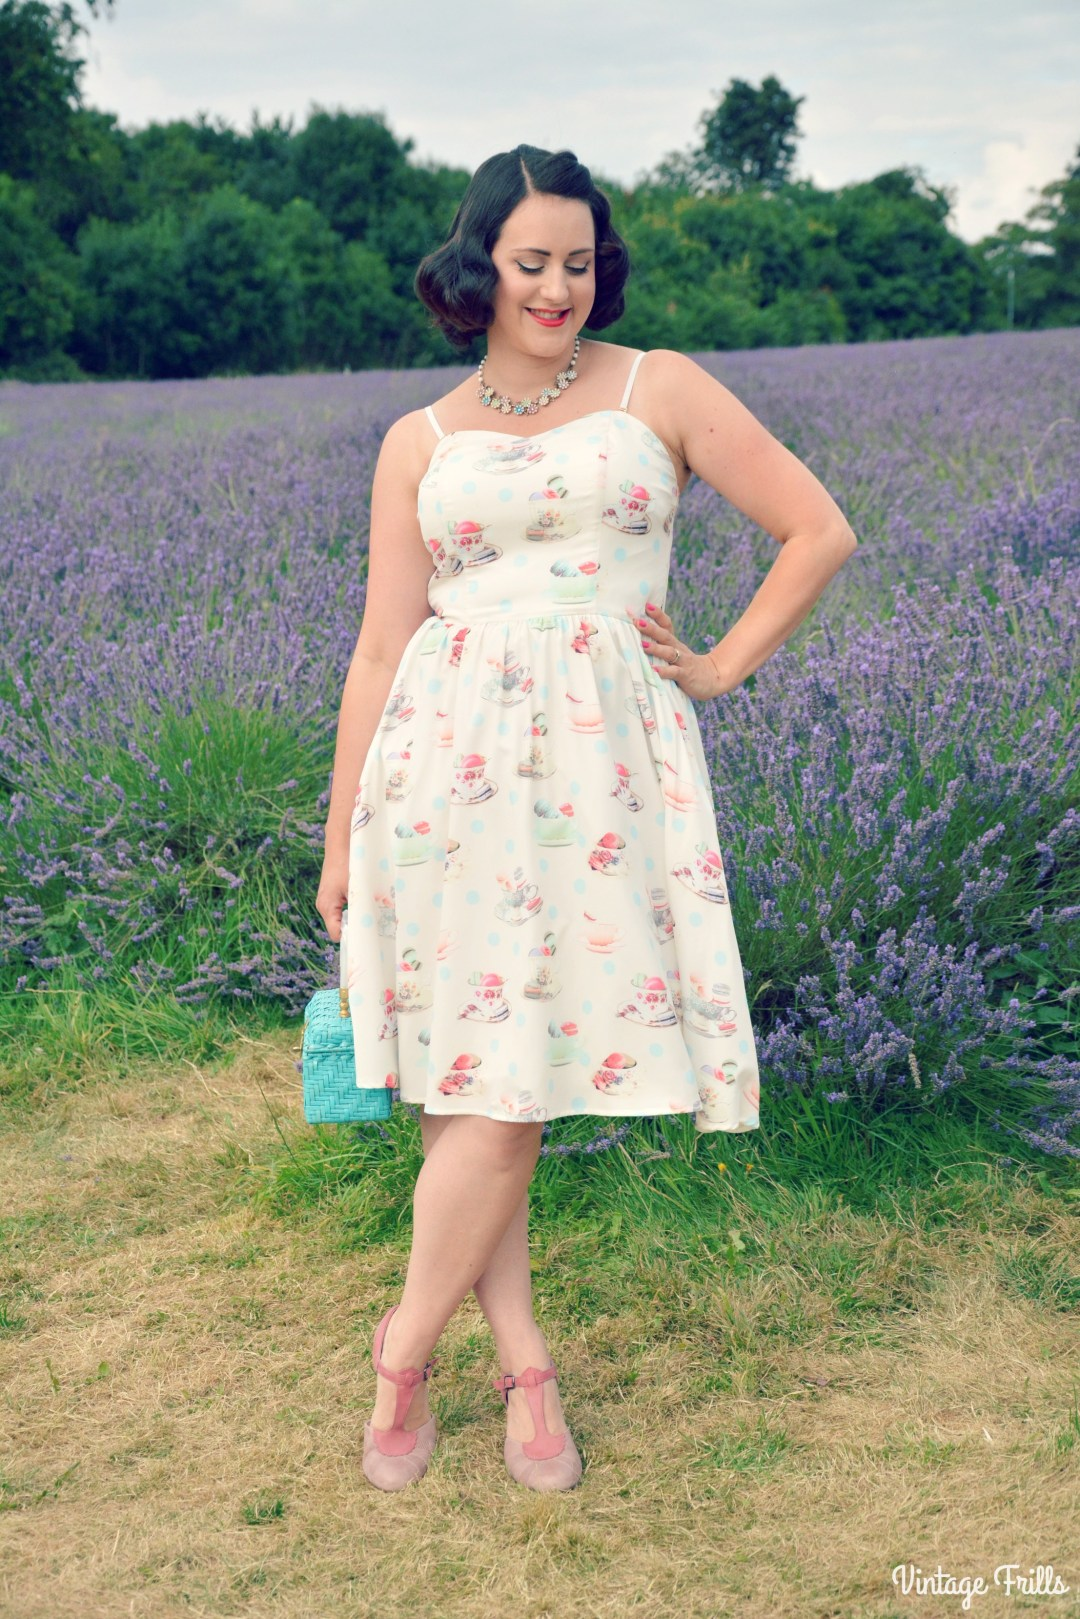 House of Fraser Yumi Macaron Dress Review